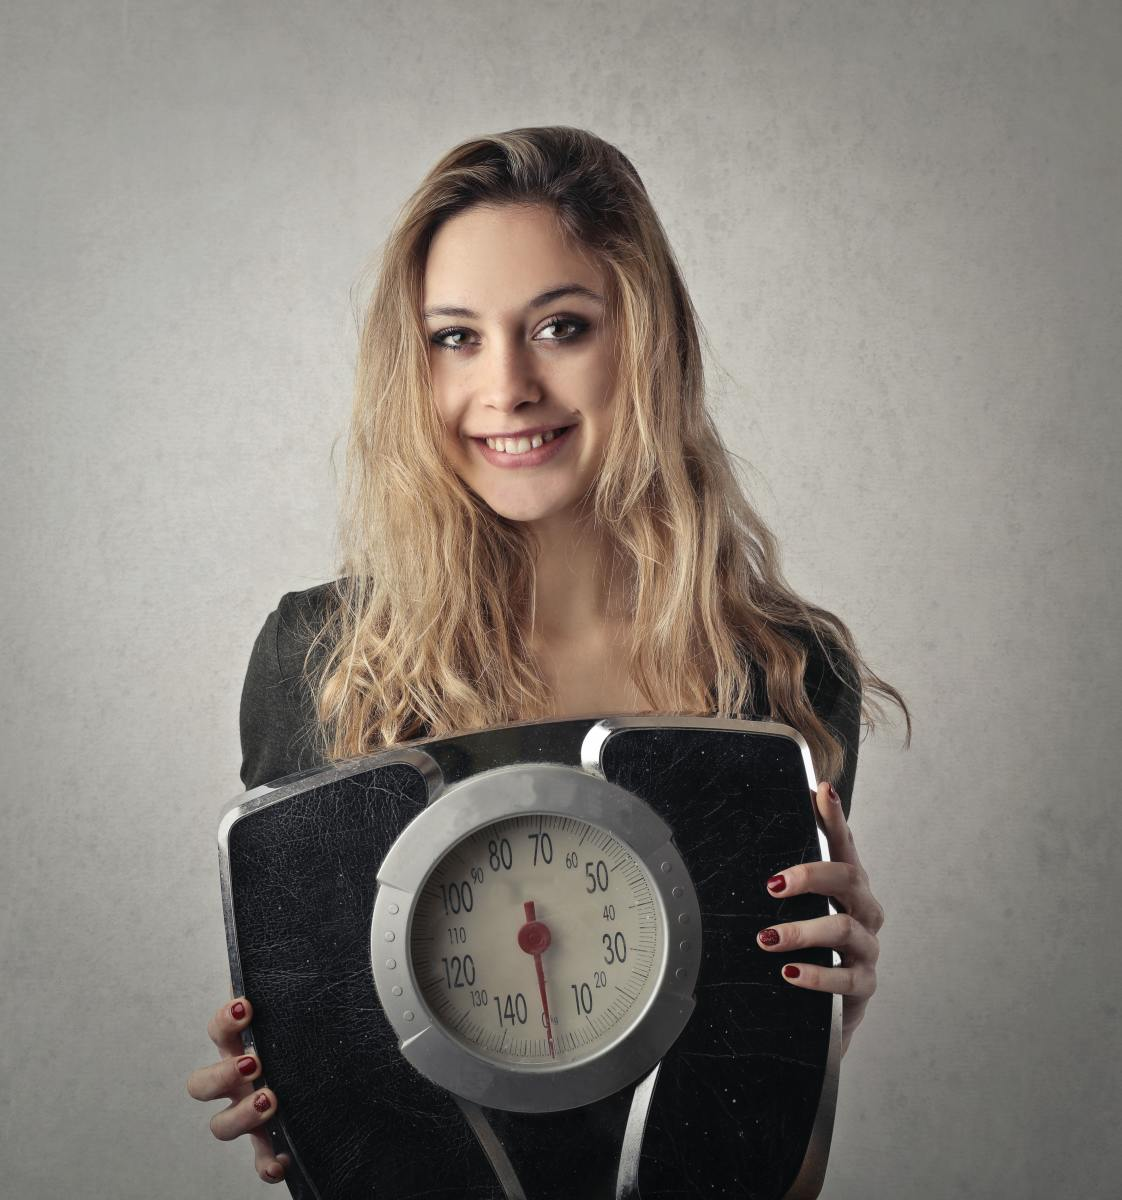 Intermittent Fasting to Lose Weight: Is Fasting Good for You?